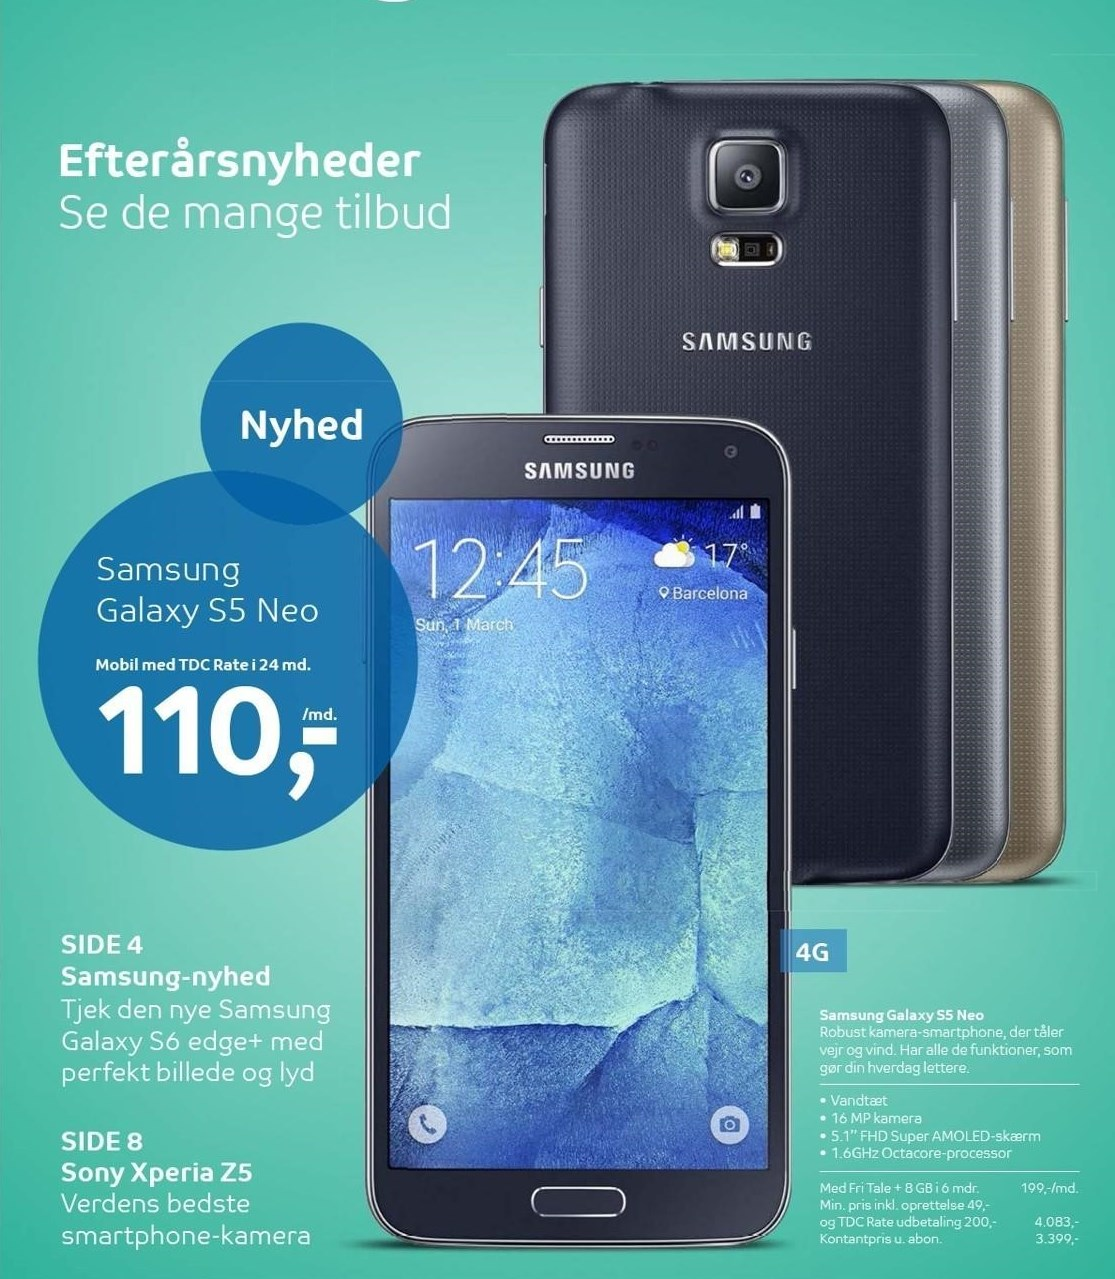 Samsung Galaxy S5 Neo med TDC Rate i 24 mdr.